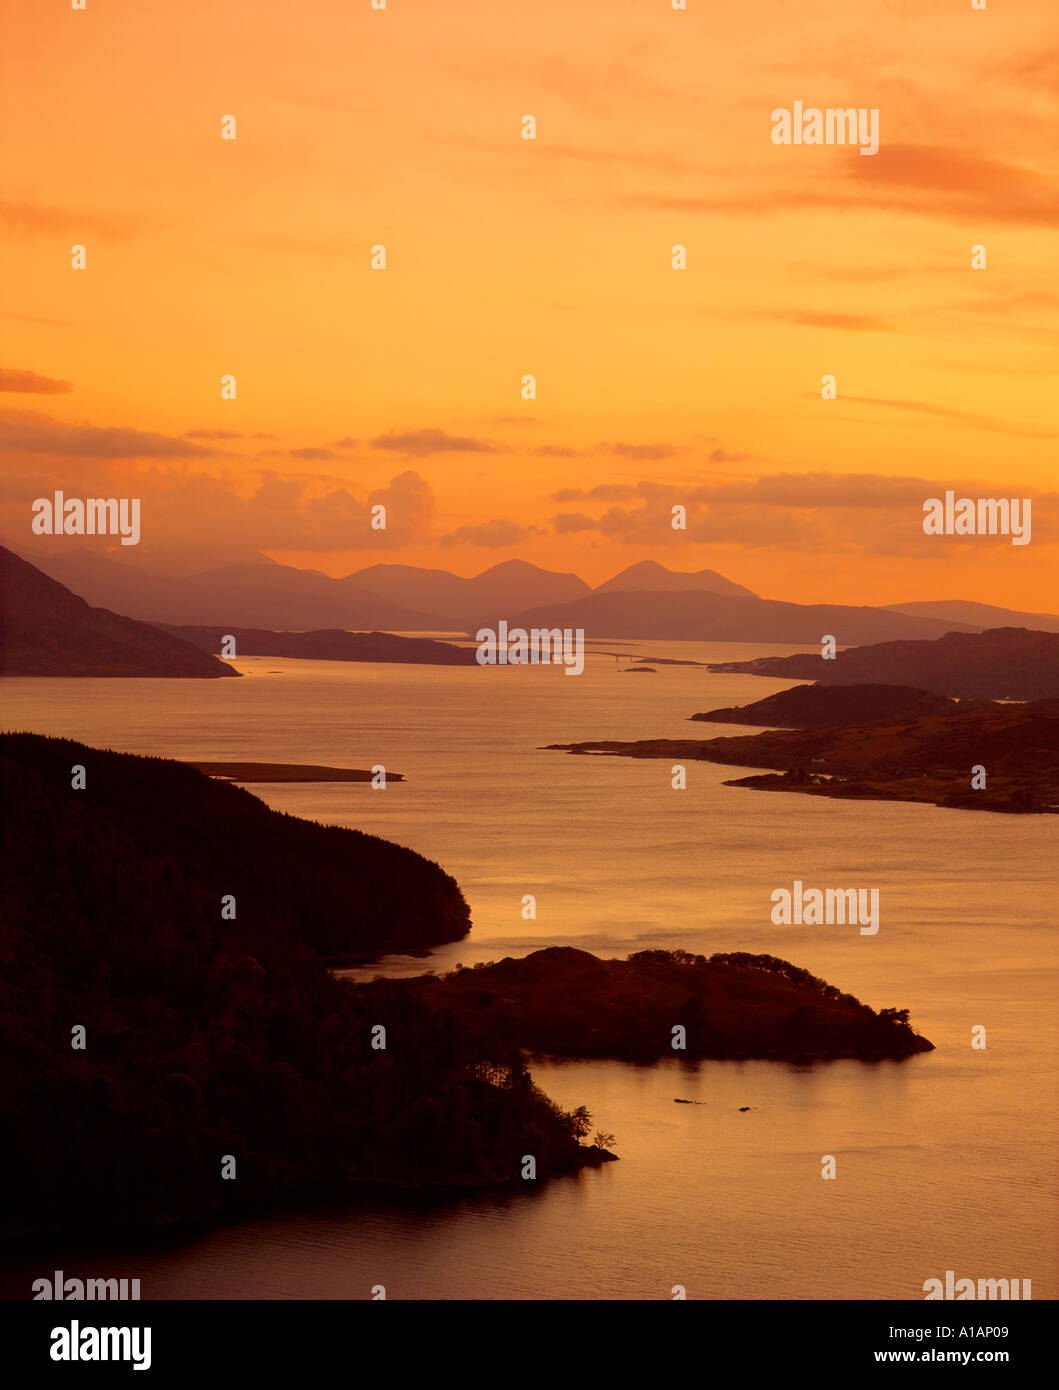 Loch Alsh and the Isle of Skye from Carr Brae at dusk, Highland, Scotland, UK - Stock Image